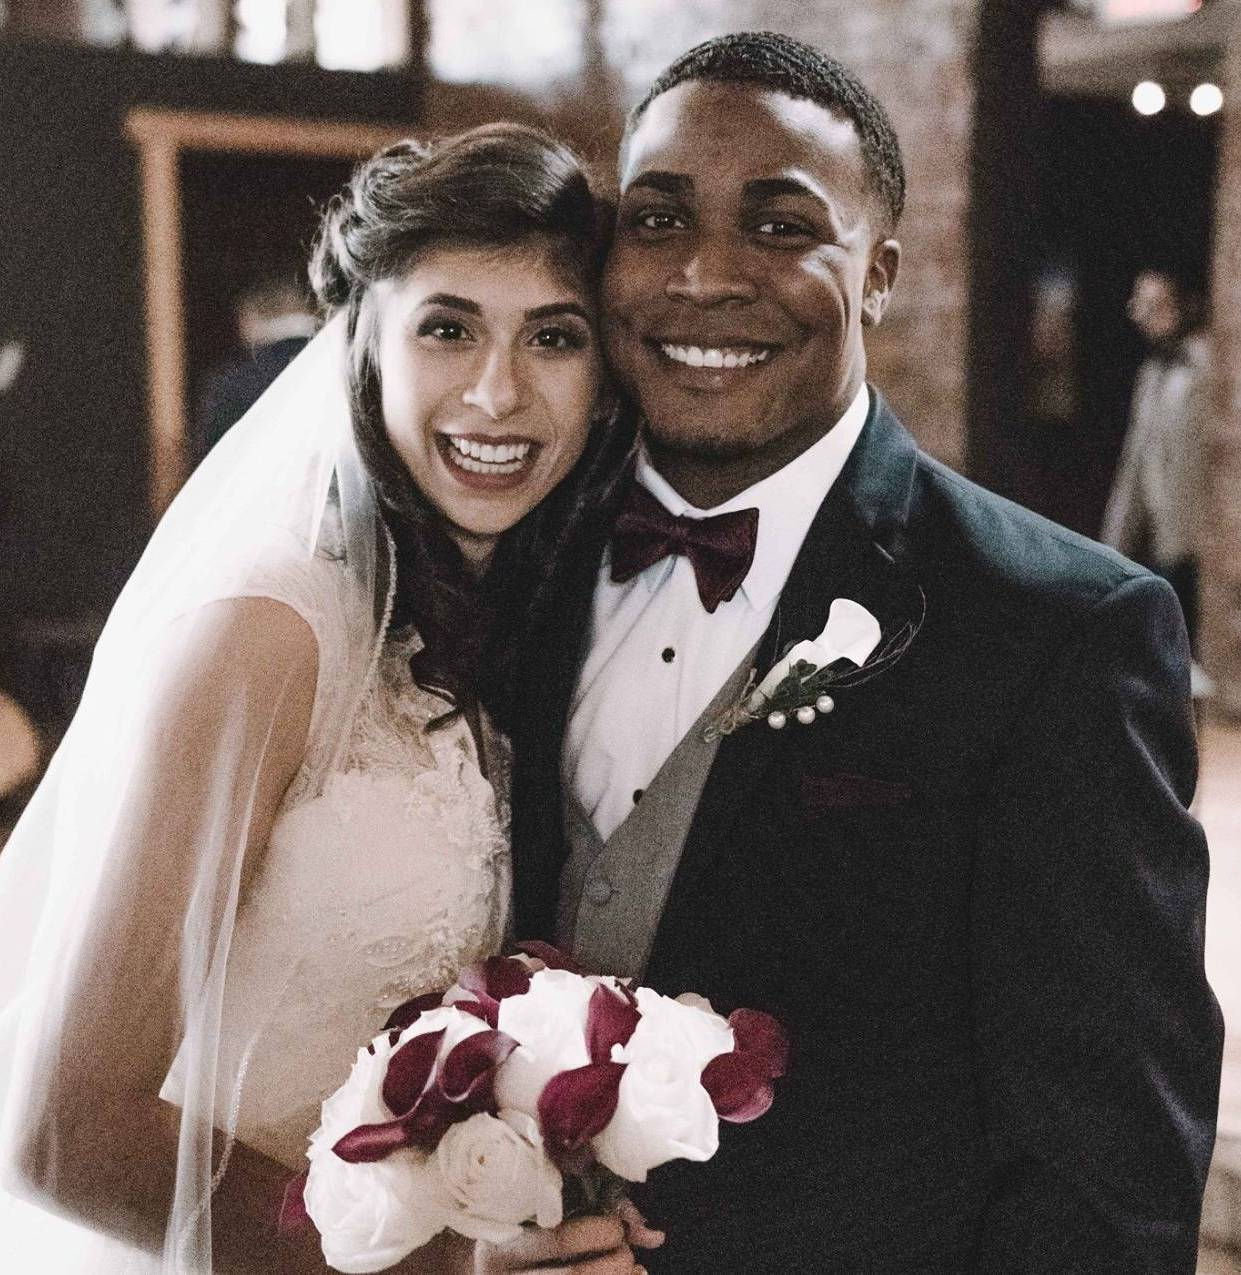 Vanessa and Jamil on their wedding day